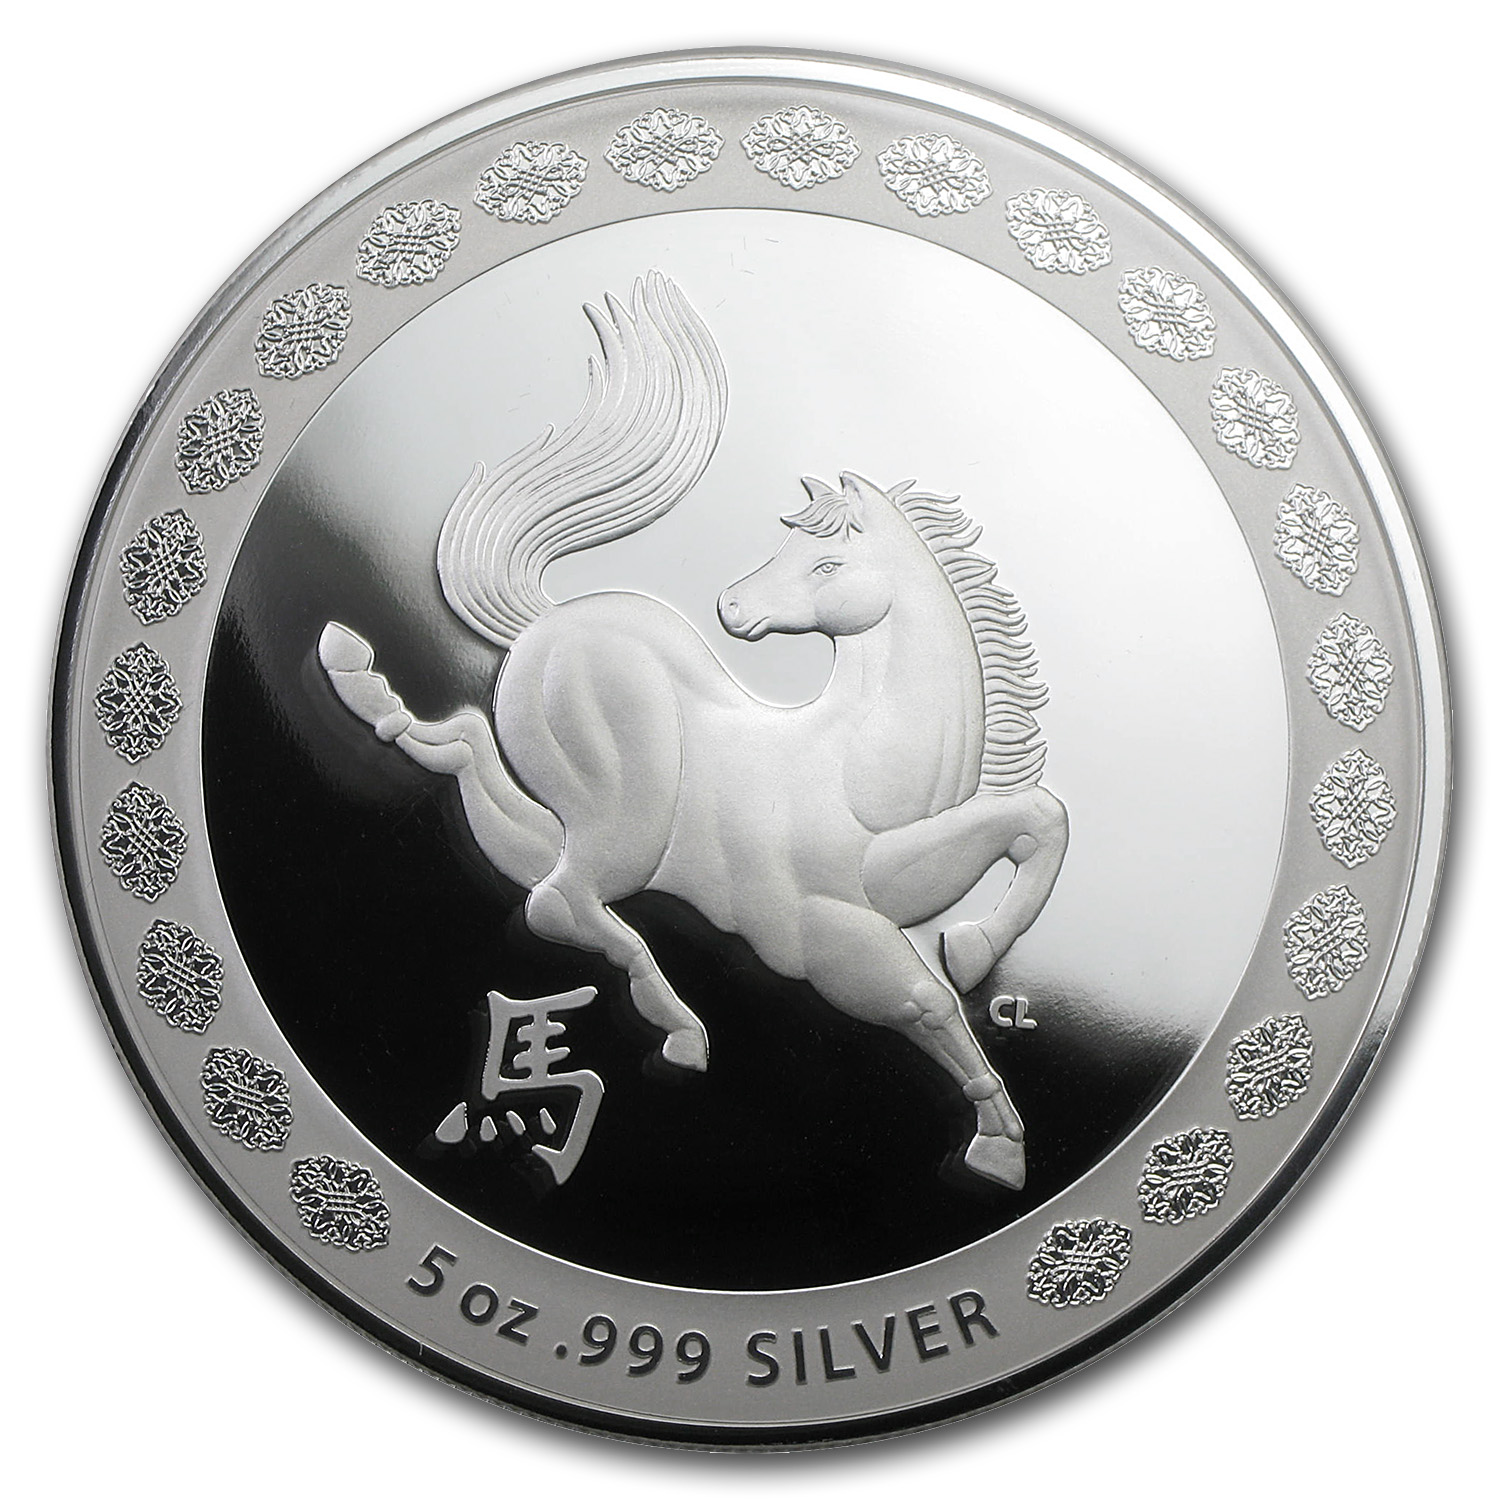 Royal Australian Silver 2014 Year of the Horse - 5 oz Proof-Like